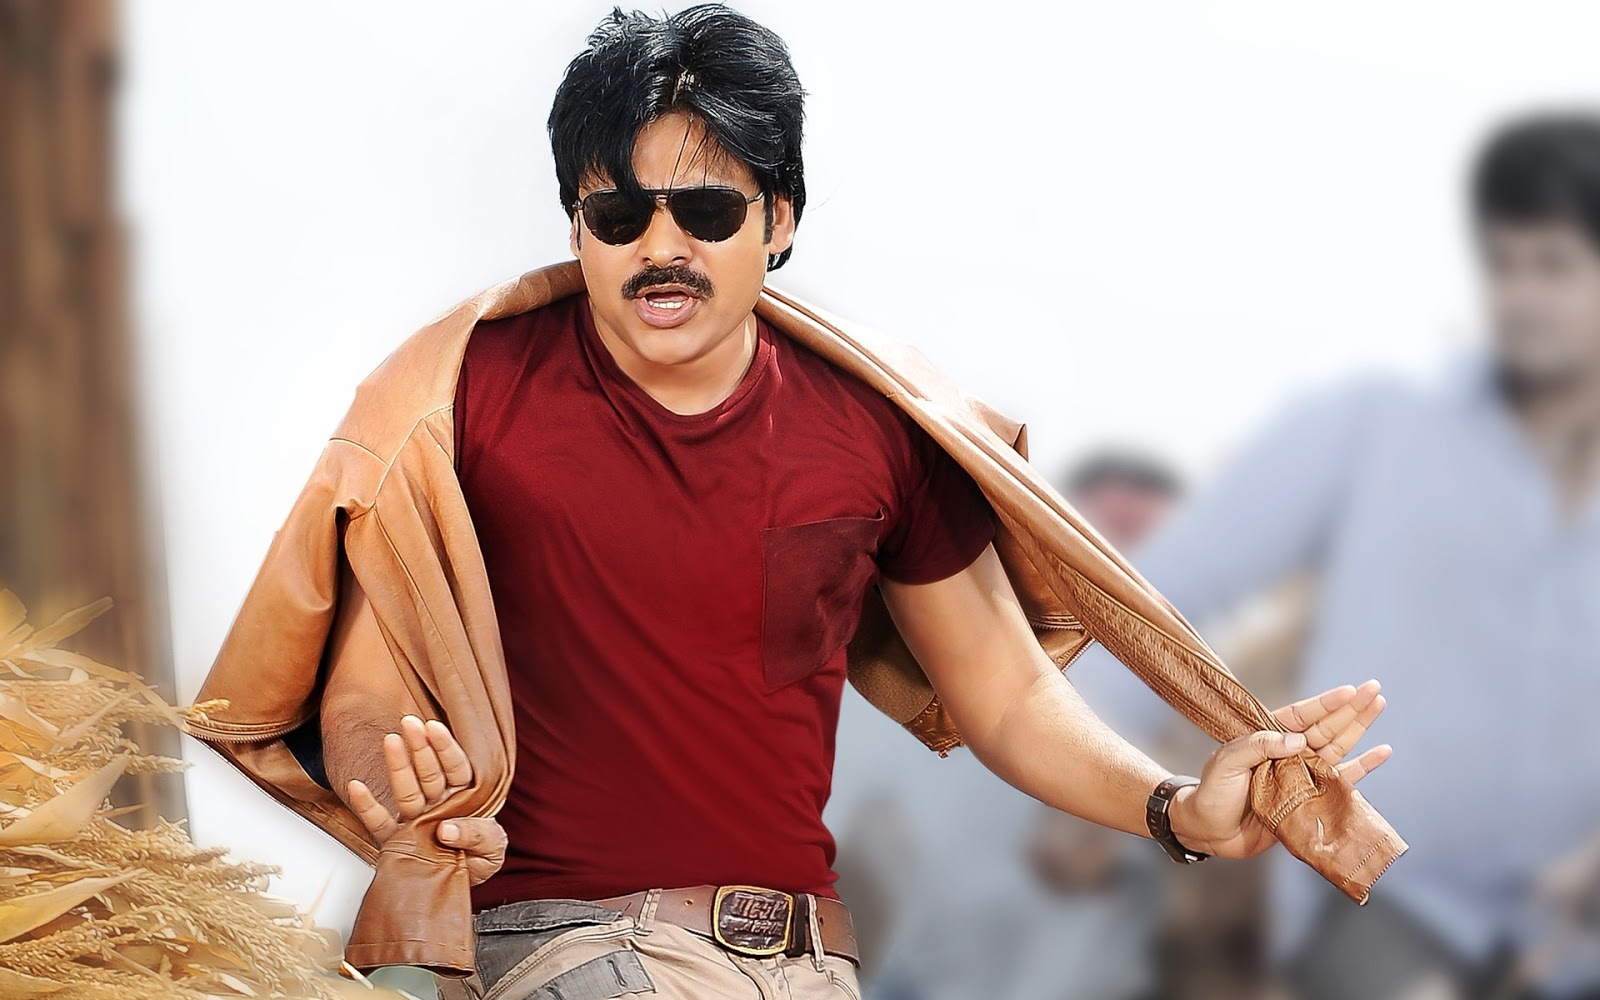 66 pawan kalyan hd pictures and high quality photos - best new hd